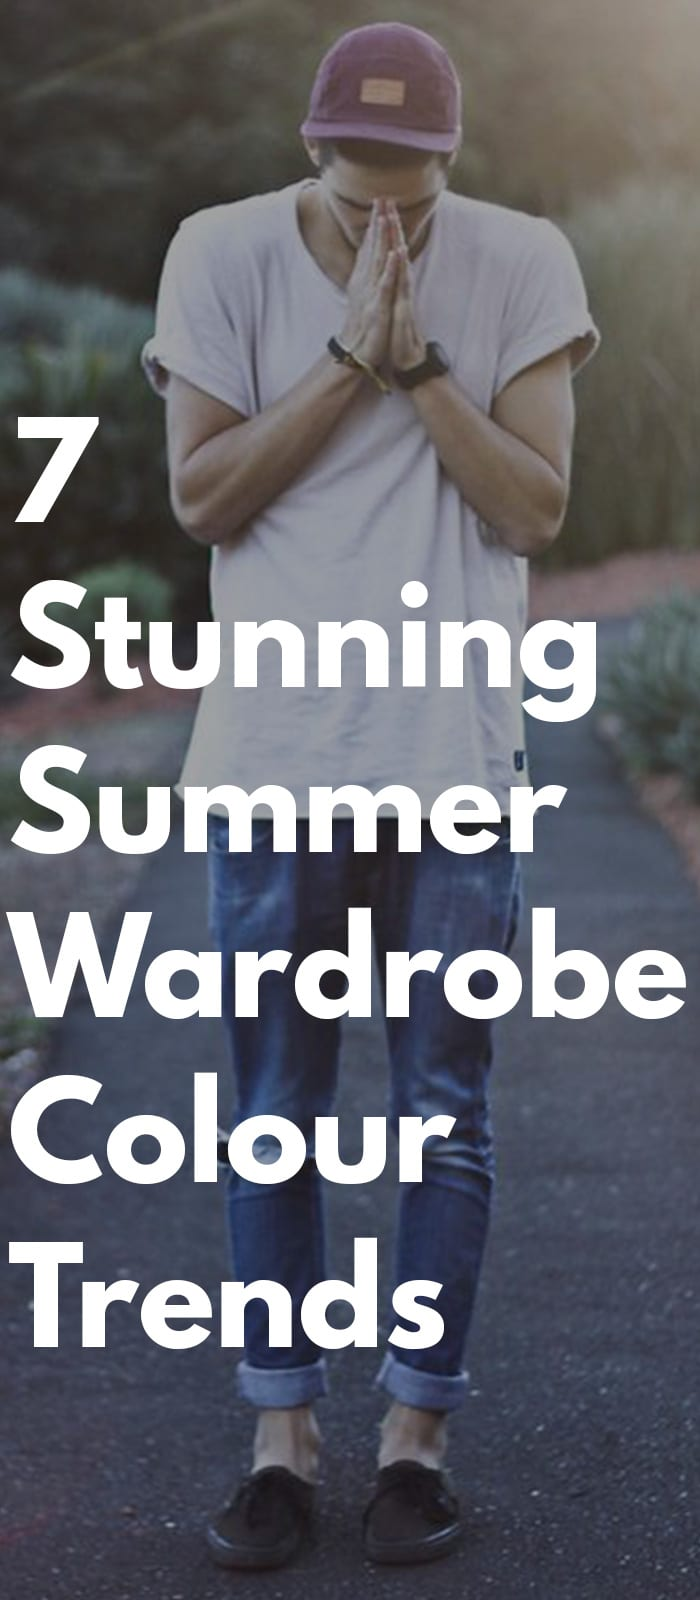 7 Stunning Summer Wardrobe Colour Trends in 2018